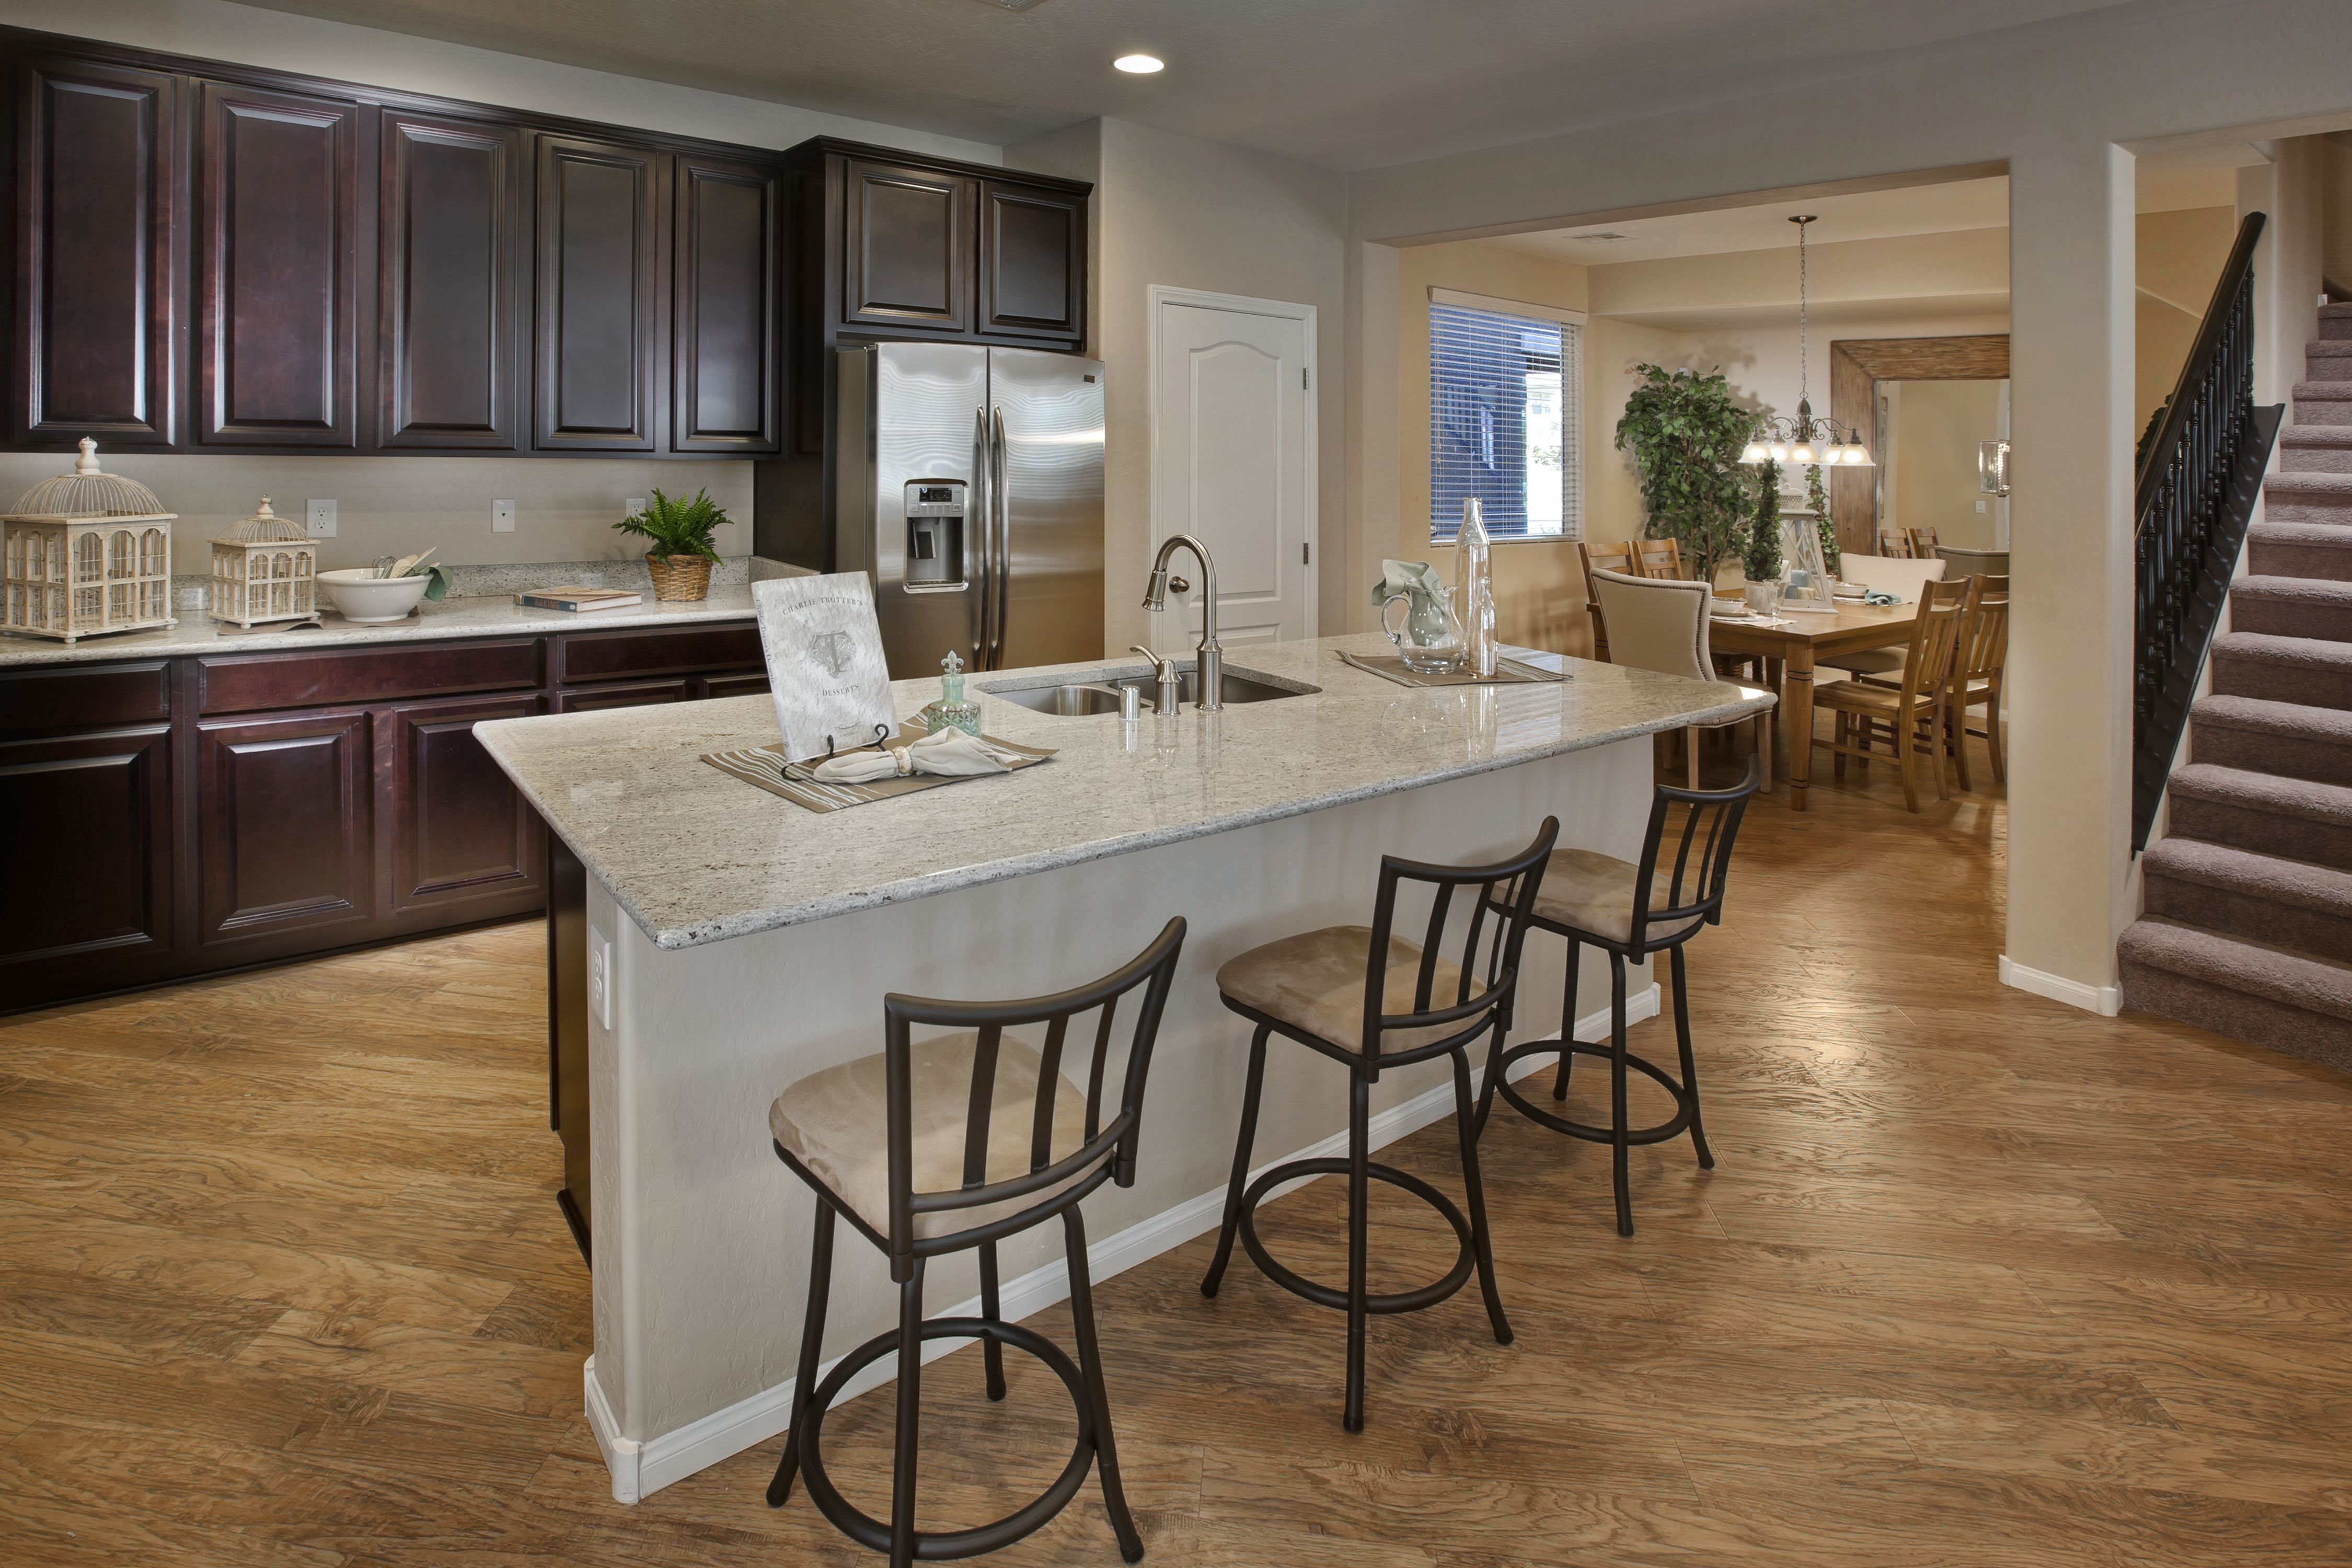 Large Kitchen Island With Sink And Cabinets Galore At Ladera Terrace In Summerlin Kitchen Island With Sink Large Kitchen Island Large Kitchen